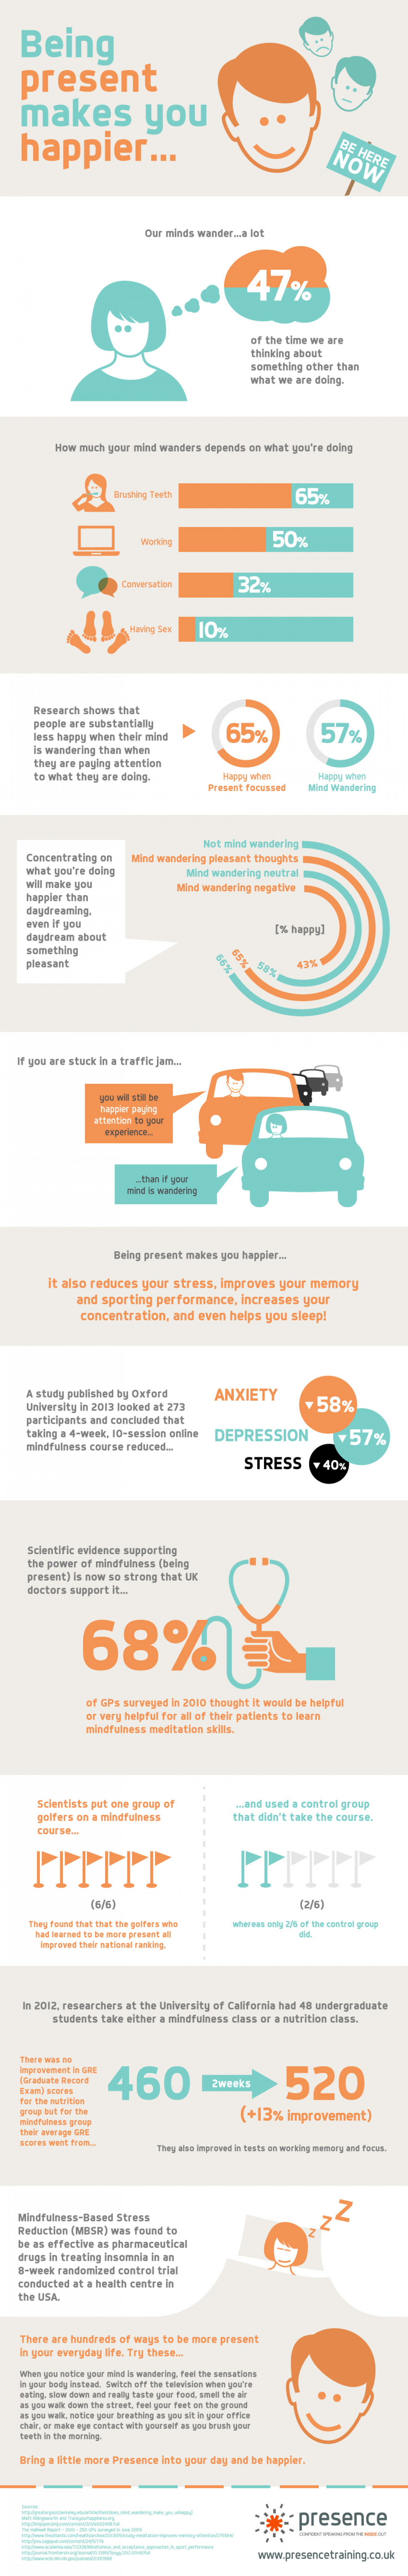 Being Present Makes You Happier! Infographic